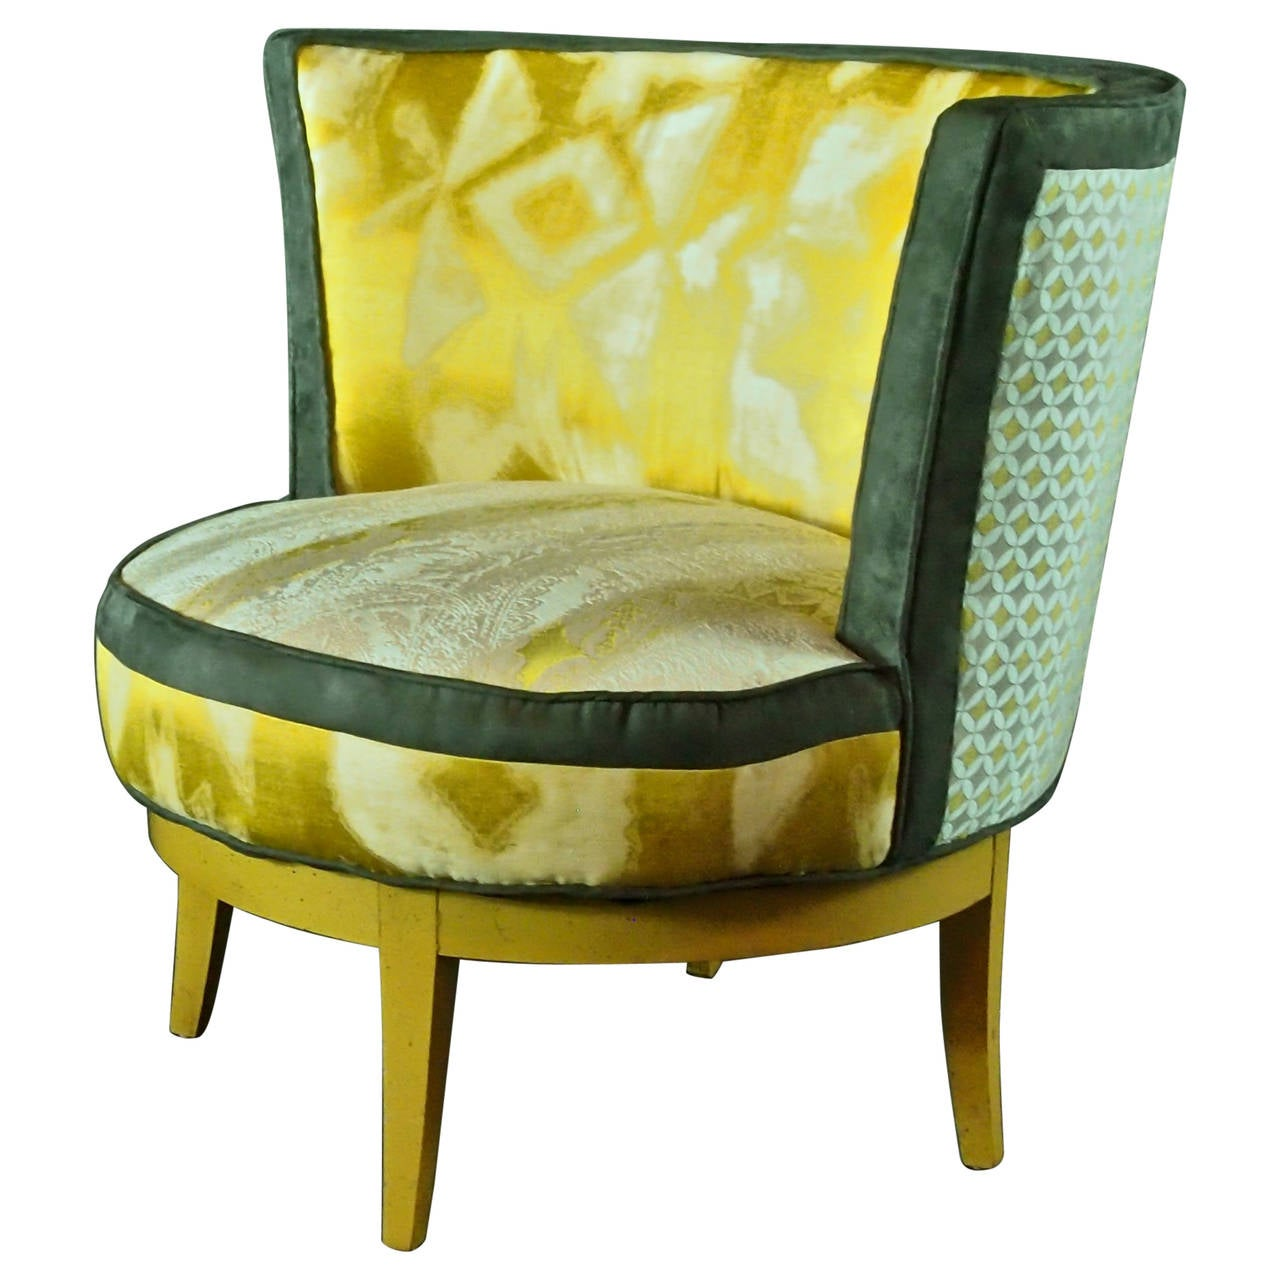 Mid Century Barrel Chair With Swivel Base In Yellow, Gray  In Stock